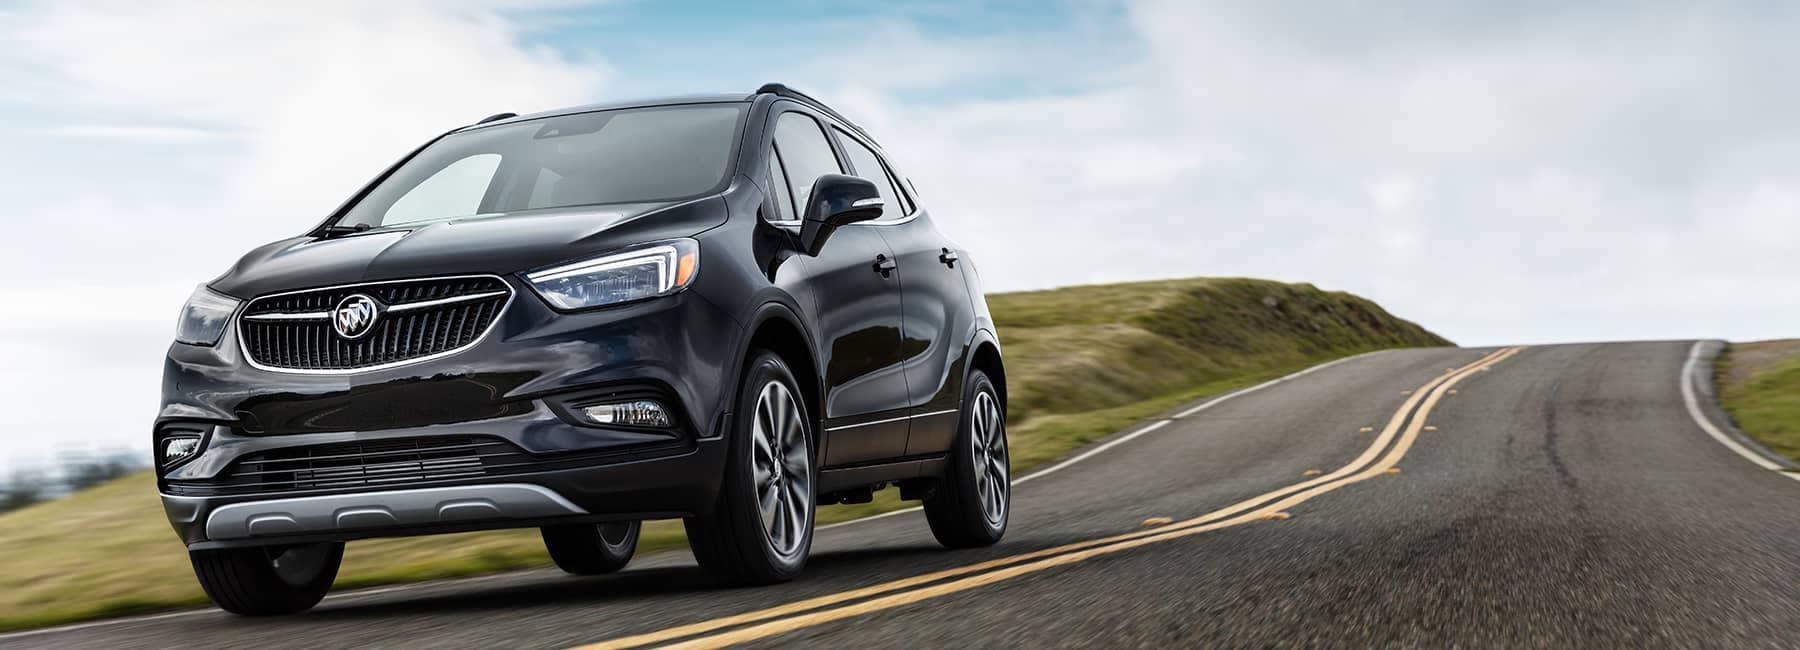 Black 2020 Buick Encore on a road_mobile